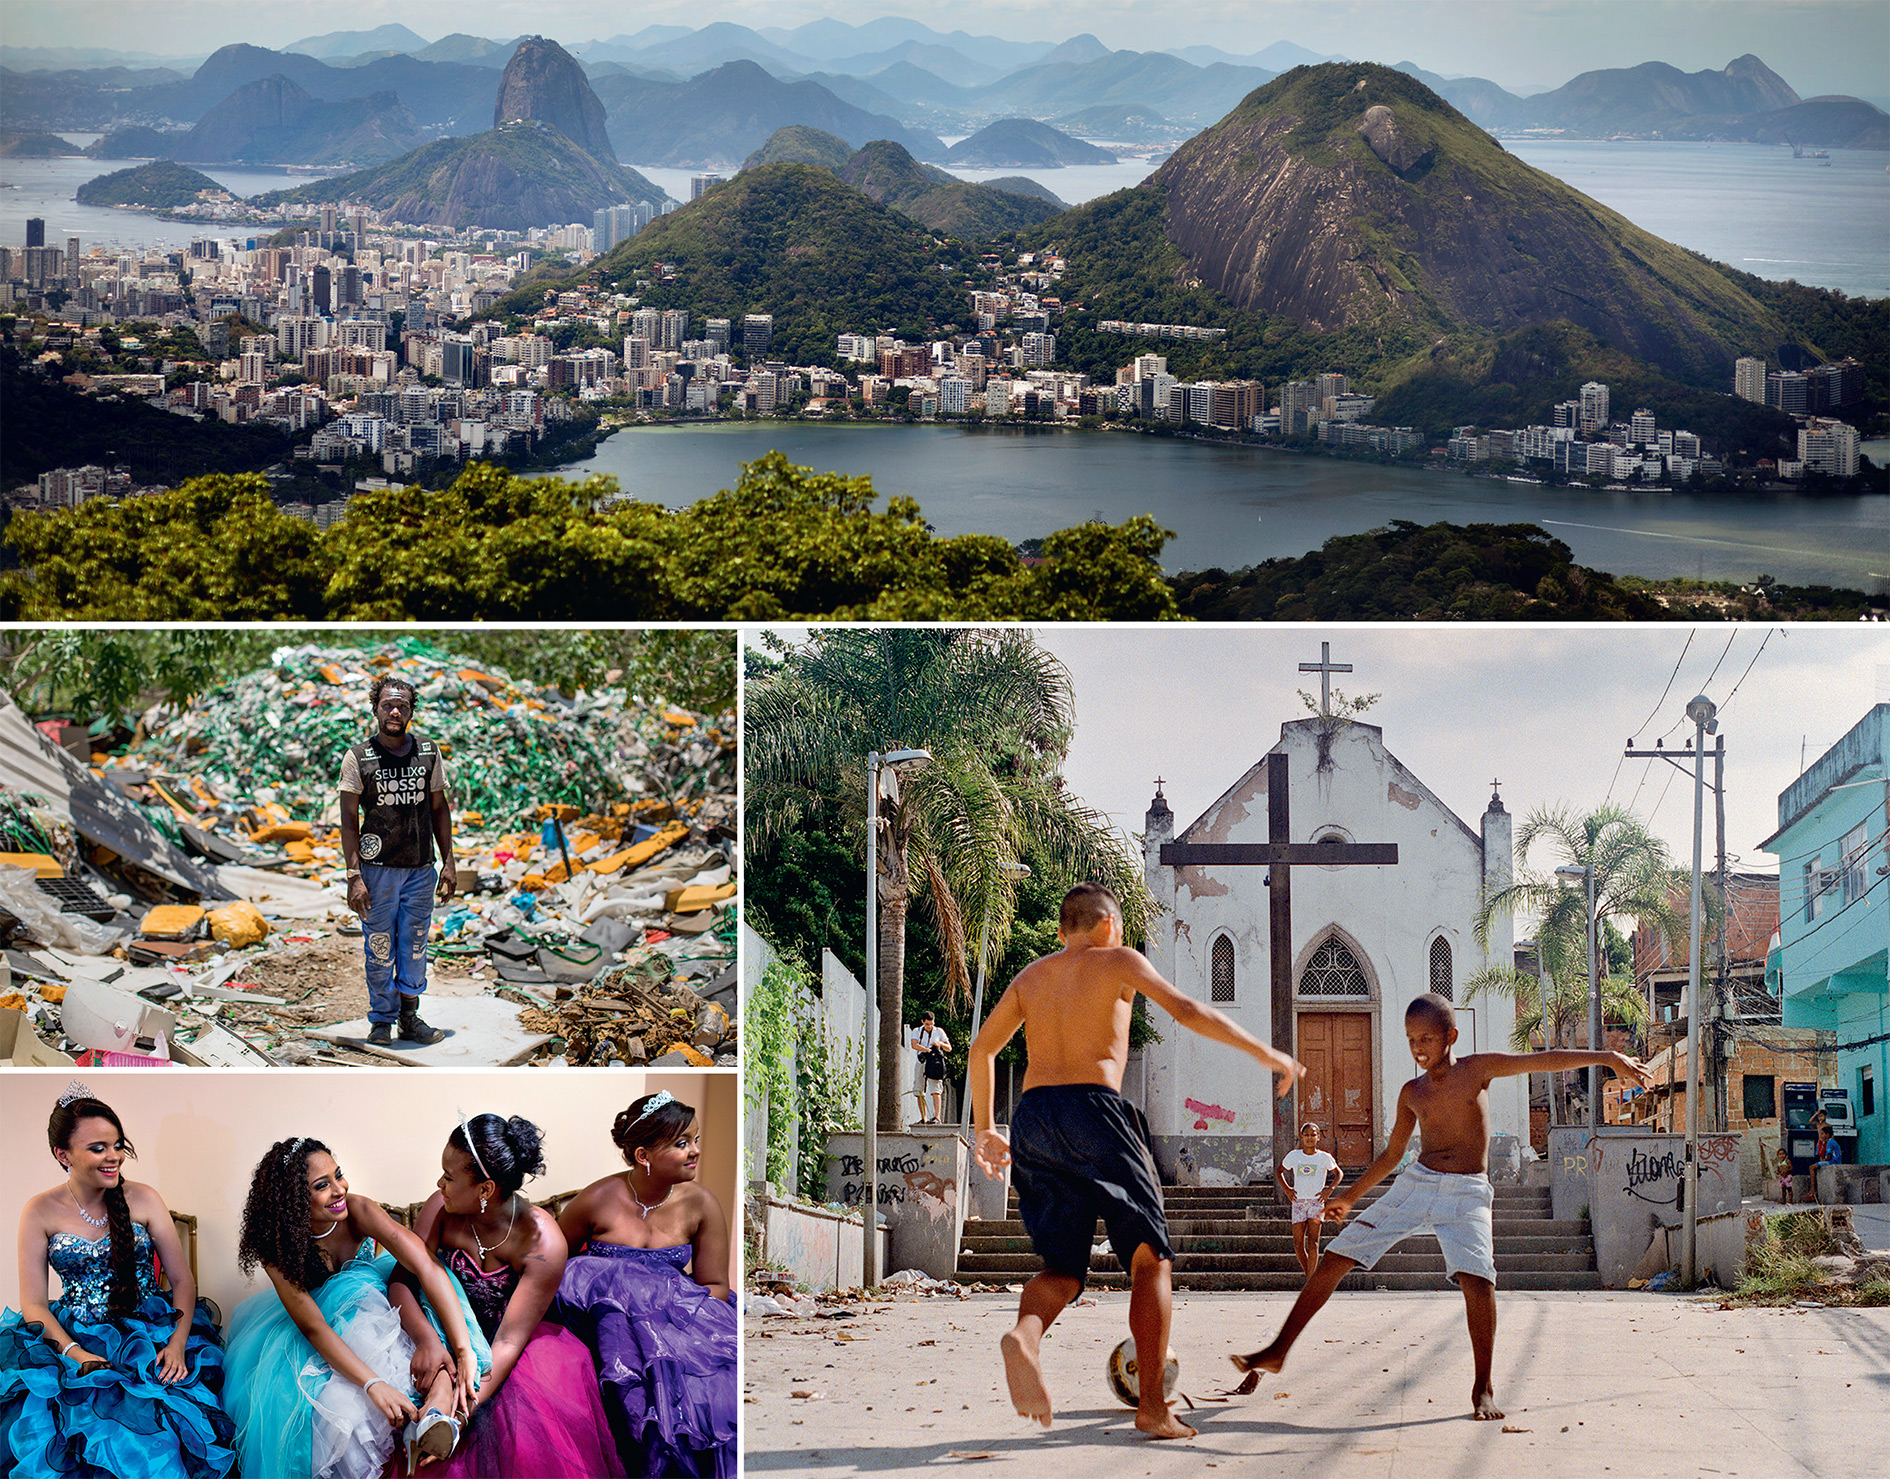 Clockwise from top: The iconic view of Rio and the Lagoa da Zona Sul; the beautiful game outside a church in Providencia, Rio's oldest favela; 15-year-old belles from the Cerro-Korah favela attending a debutante ball organized as a good-will gesture by the Pacifying Police Unit; Zumbi da Silva, a former rubbish-picker in Esqueleto who now works in a new recycling co-operative.